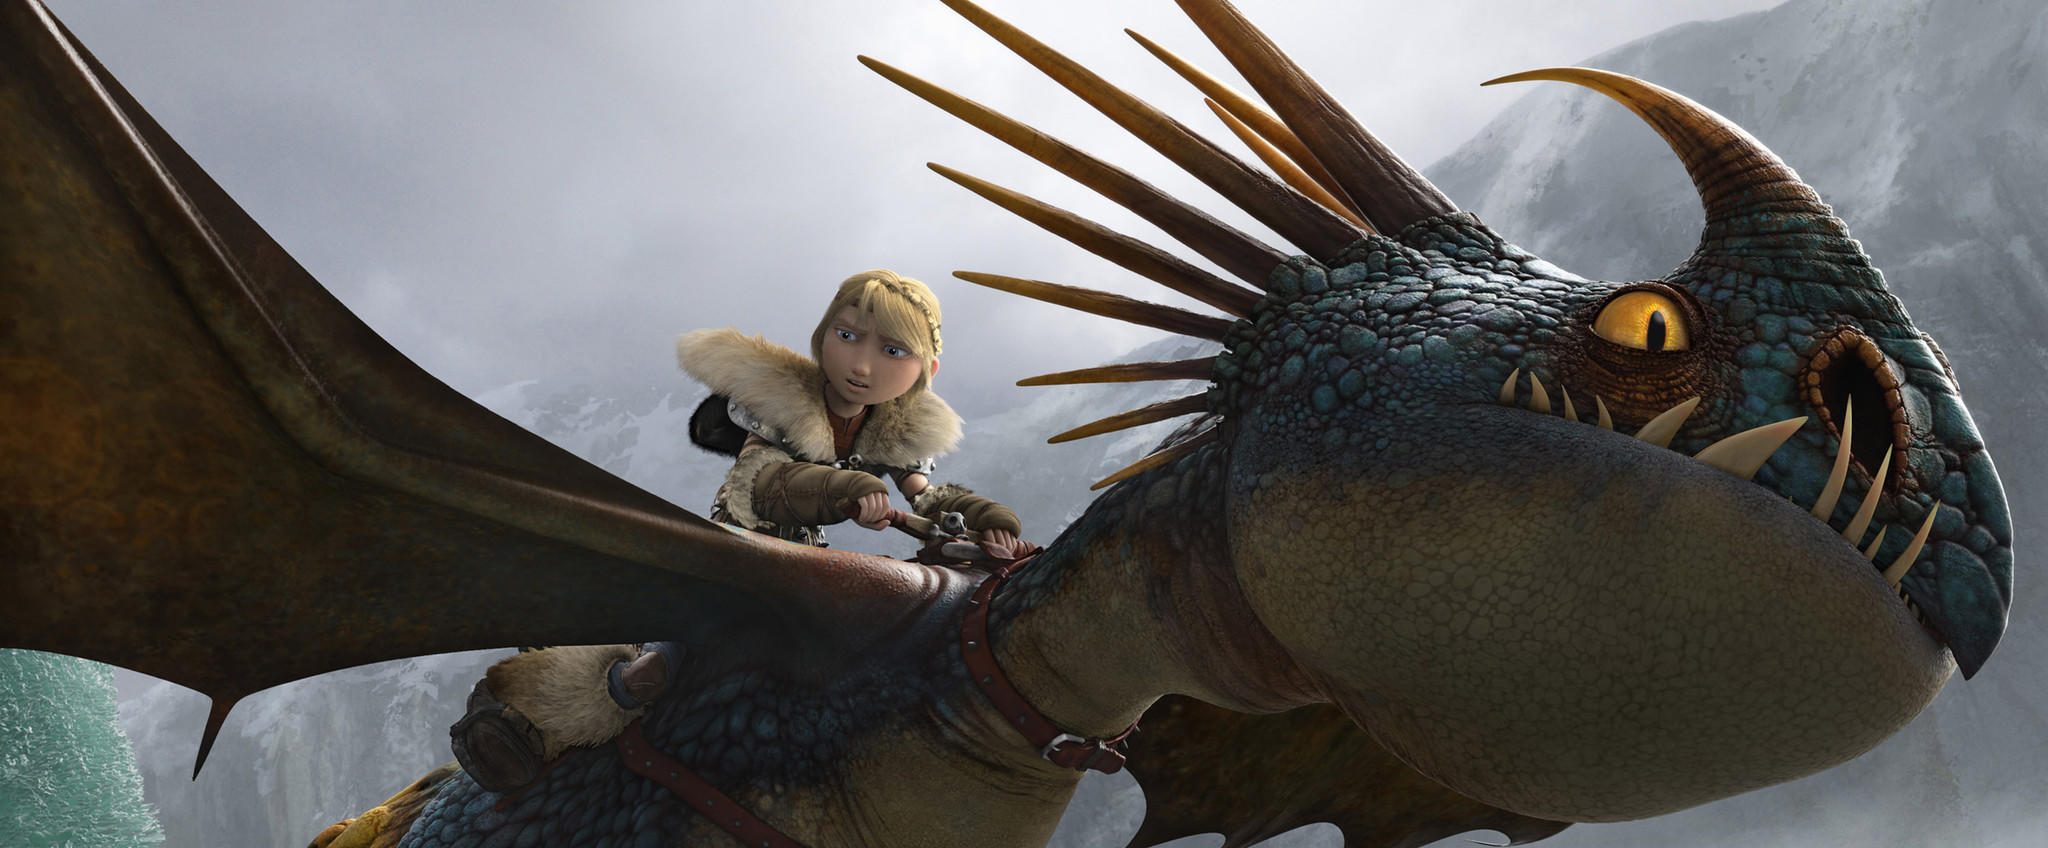 "Astrid (America Ferrara) rides her faithful dragon in the film ""How to Train Your Dragon 2."""